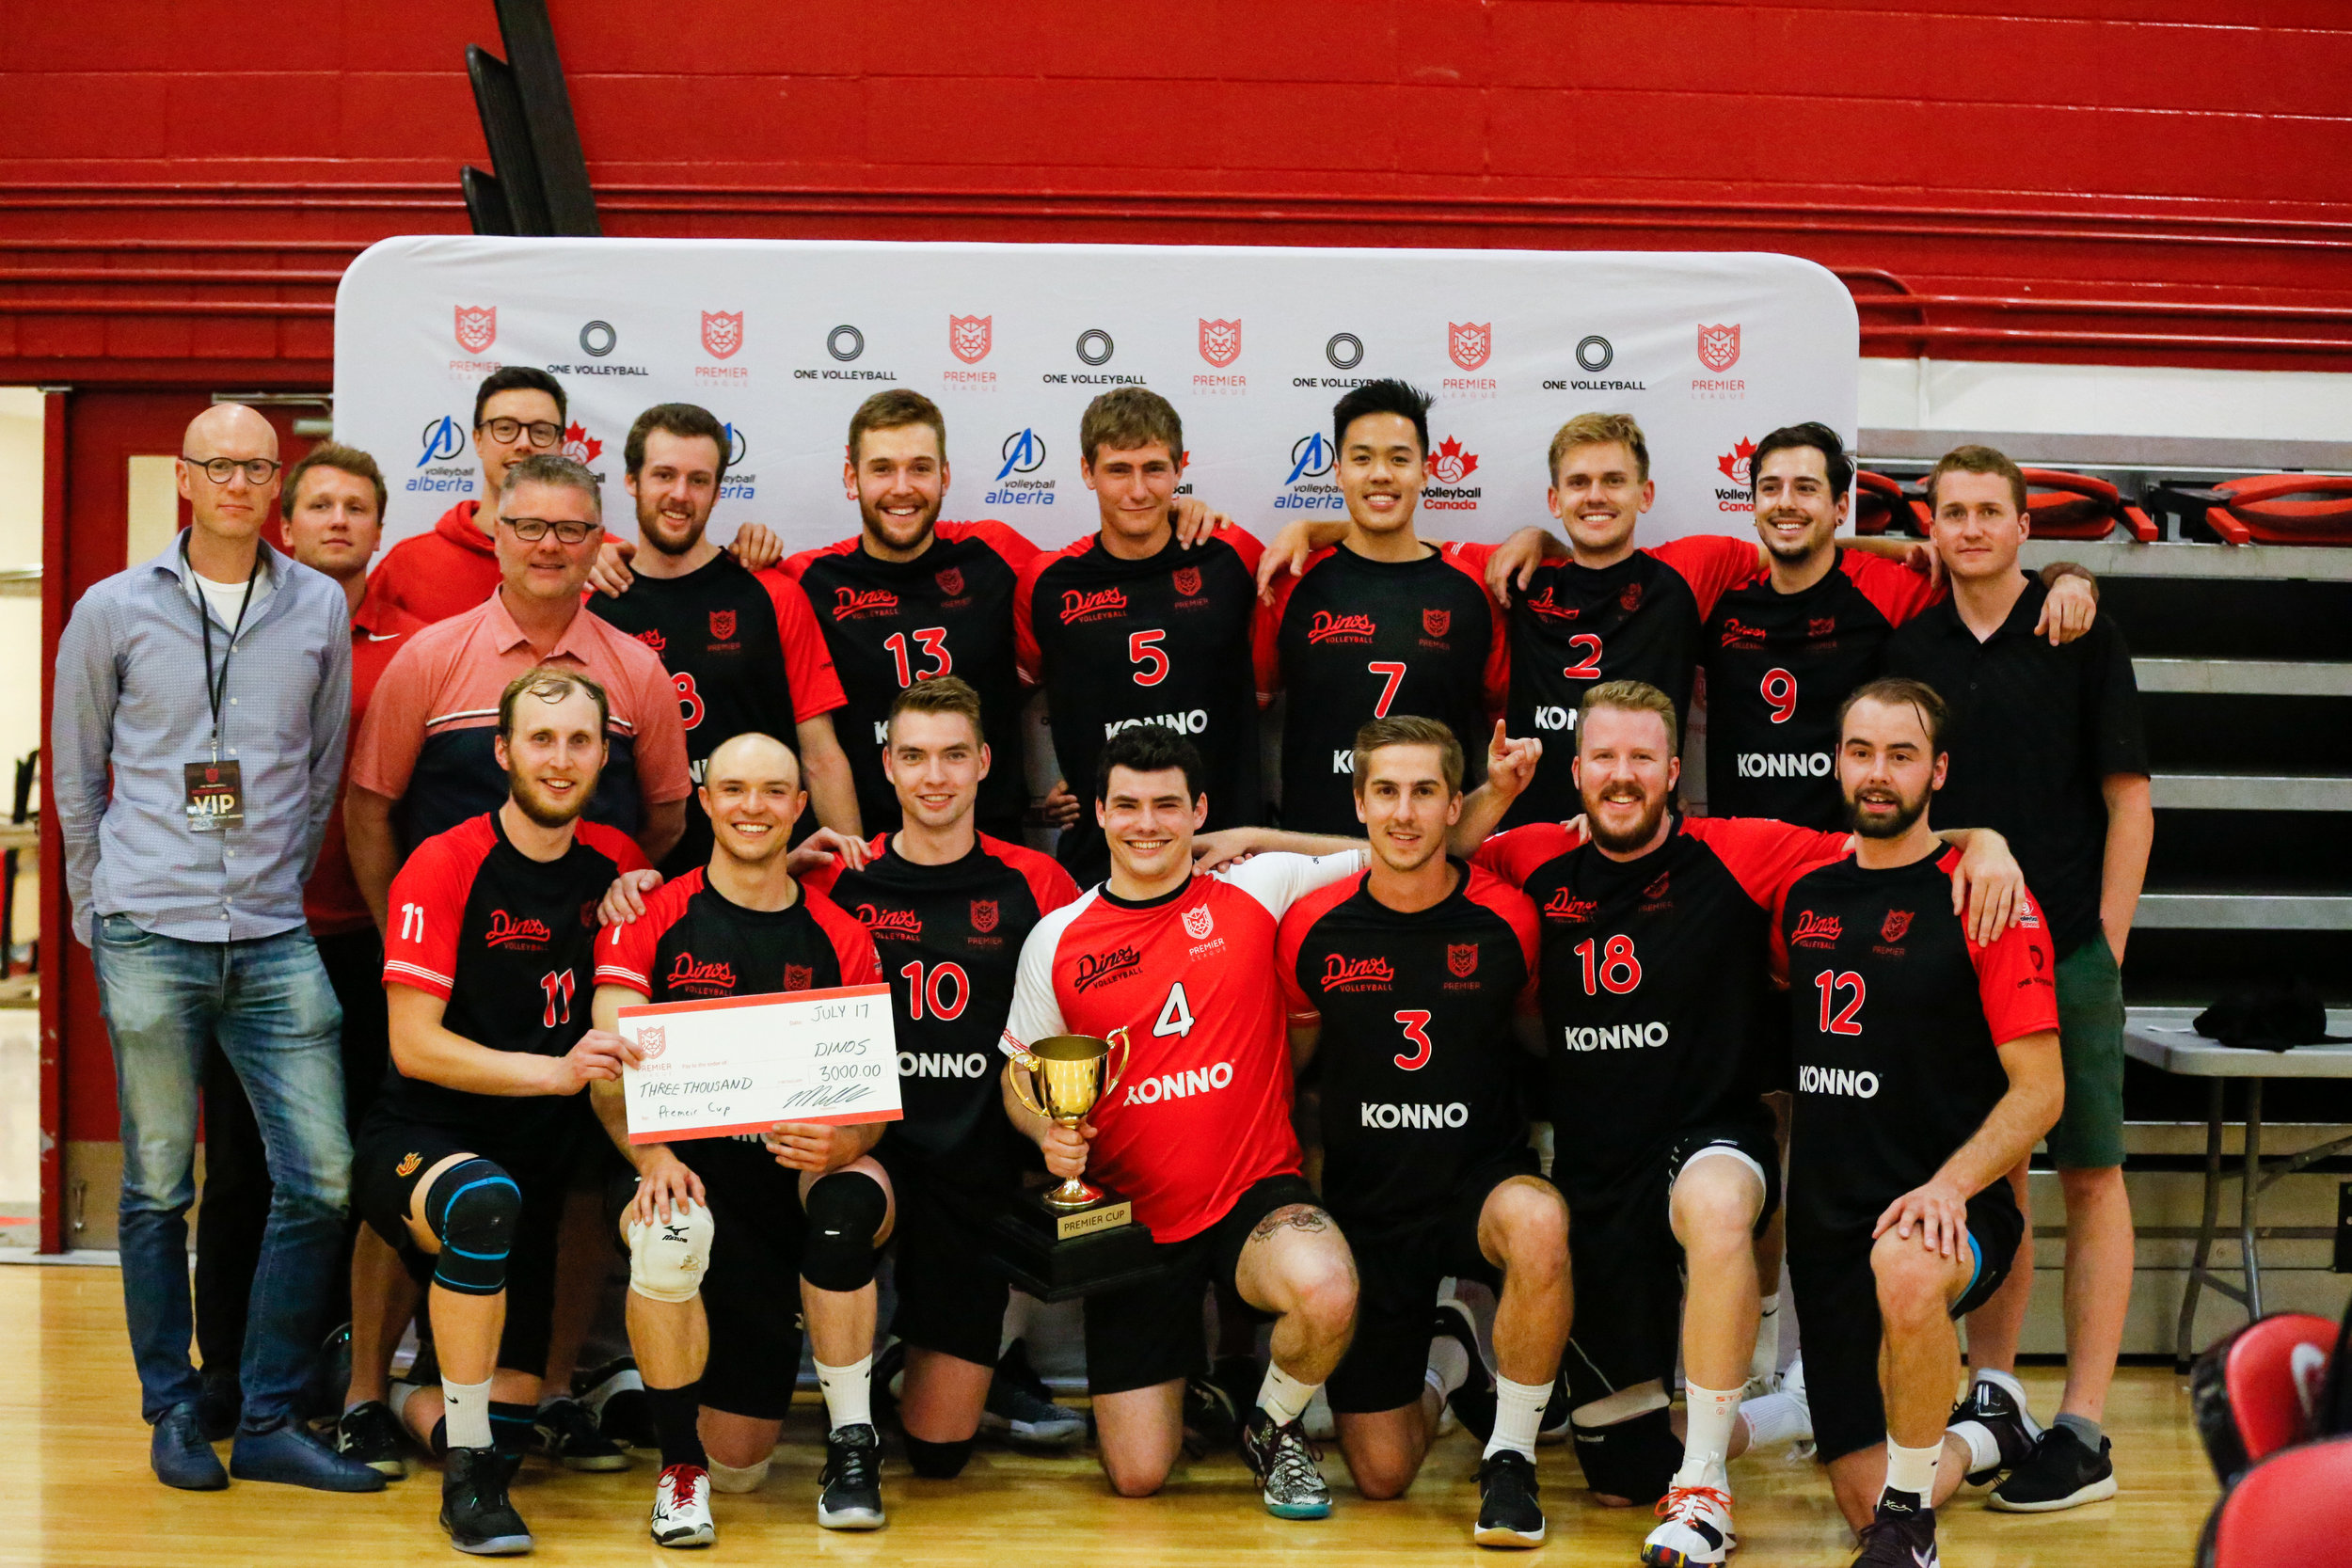 GBE Dinos Volleyball take home the 2019 Premier Cup